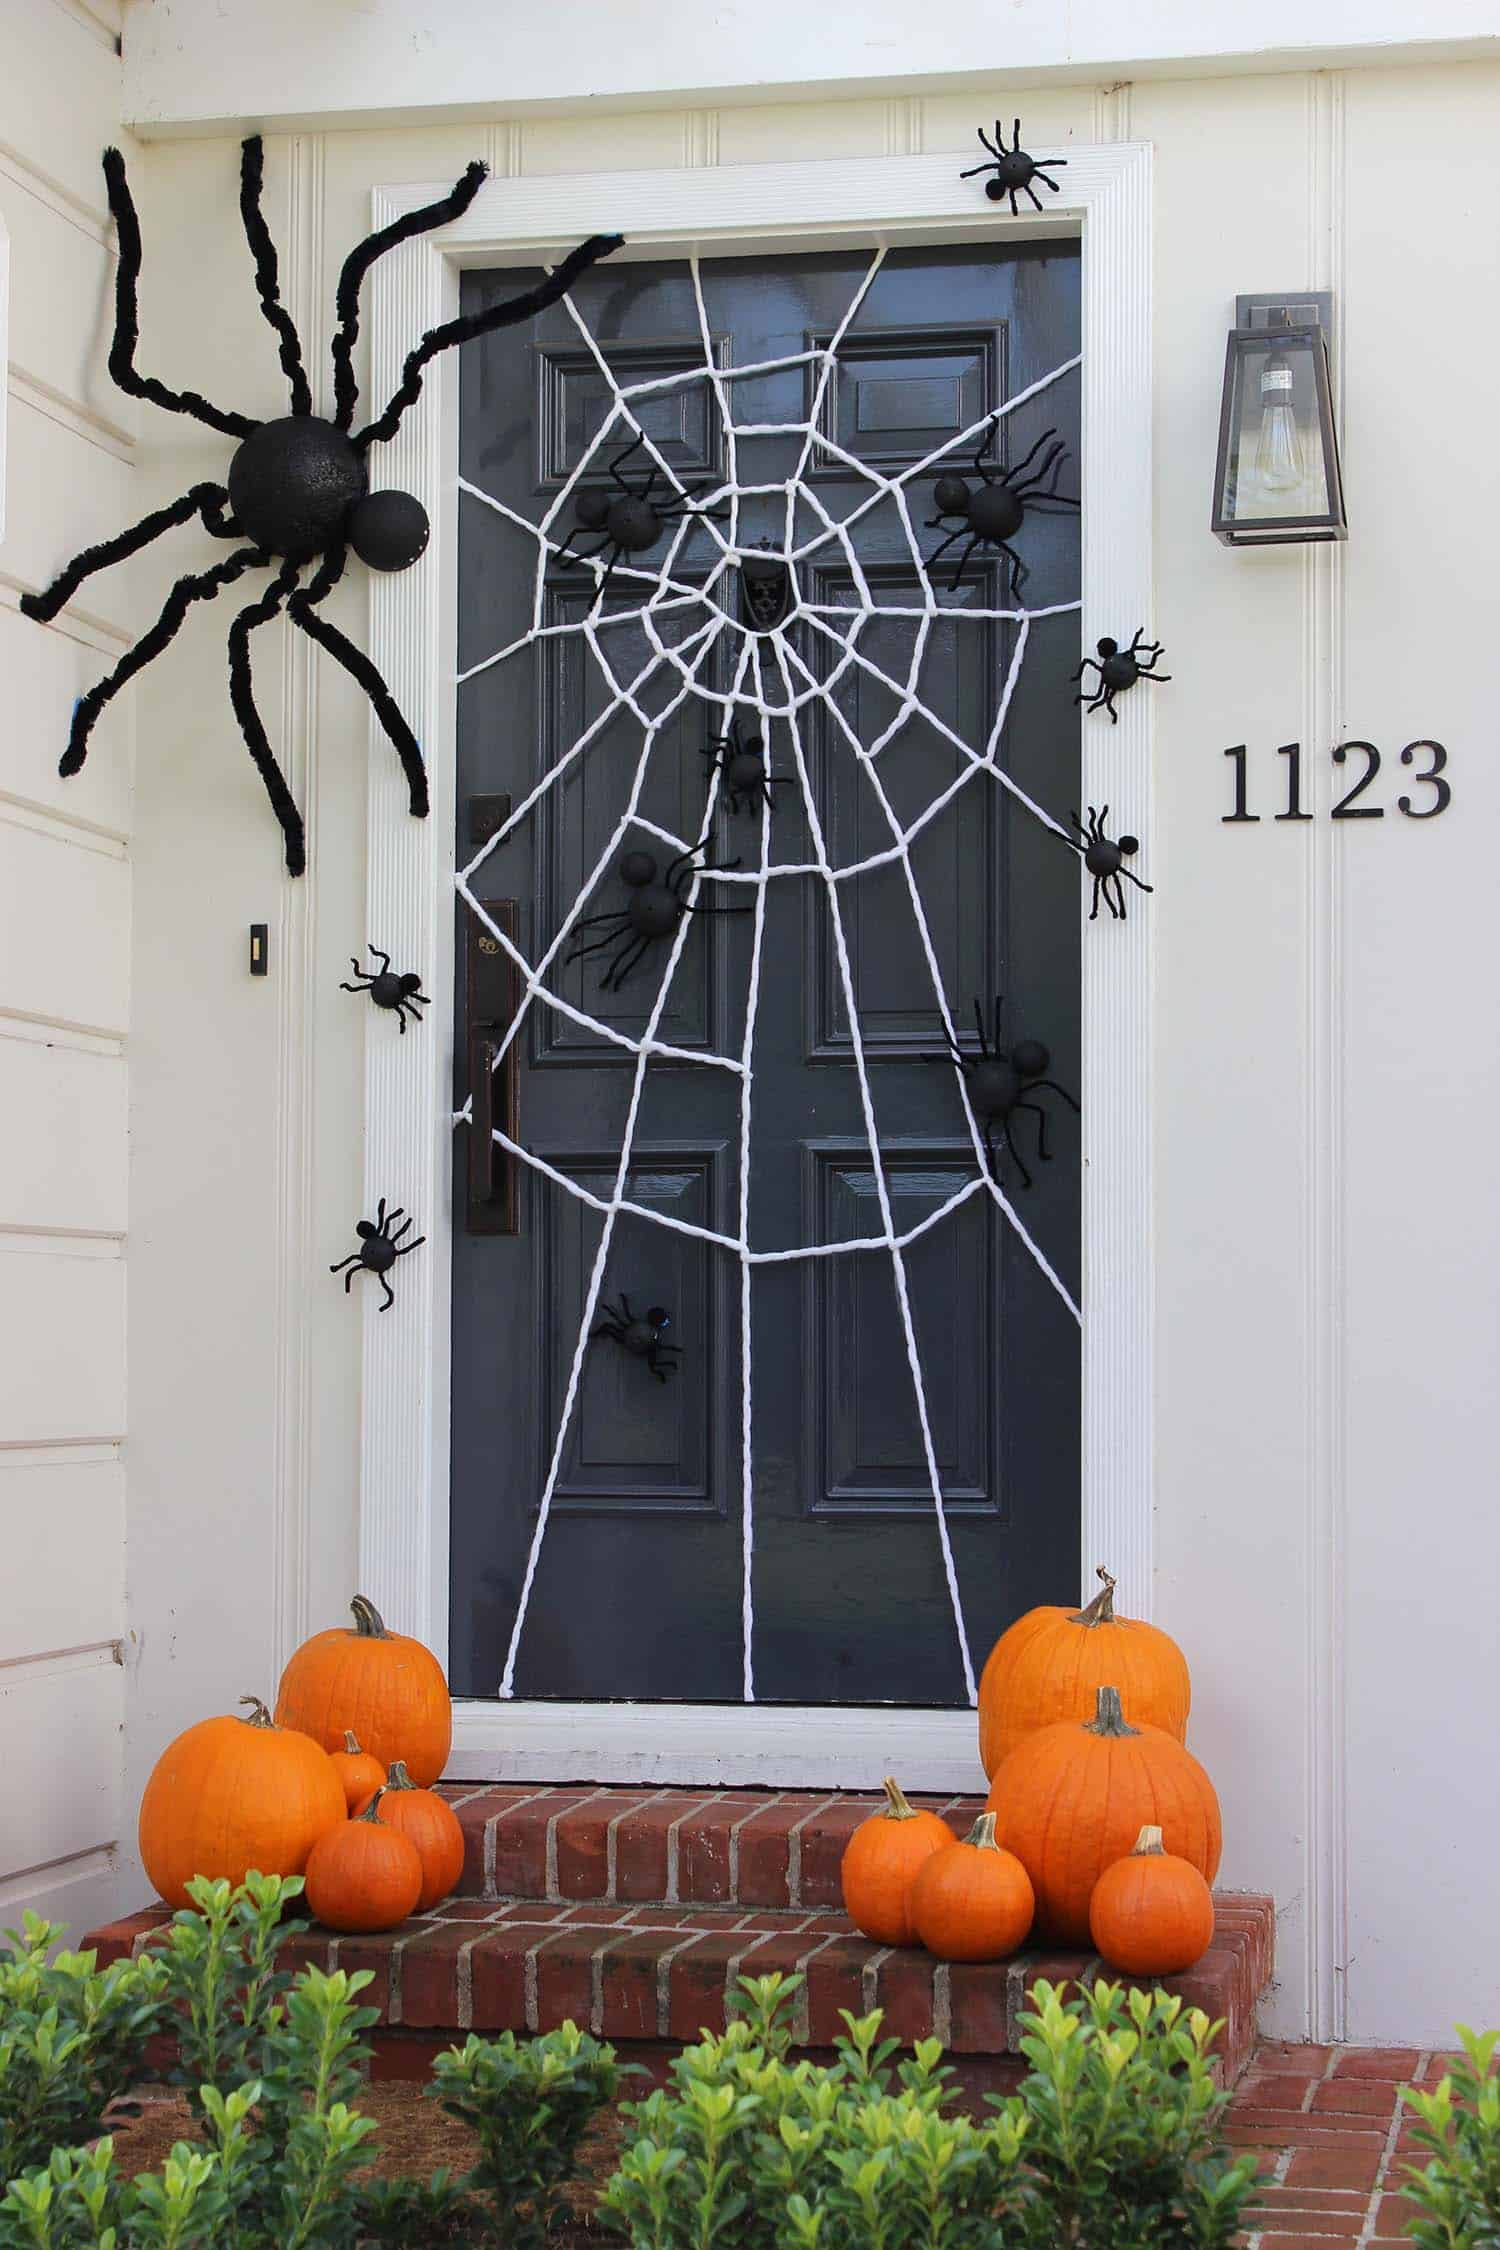 diy-halloween-decoration-outdoors-spider-web